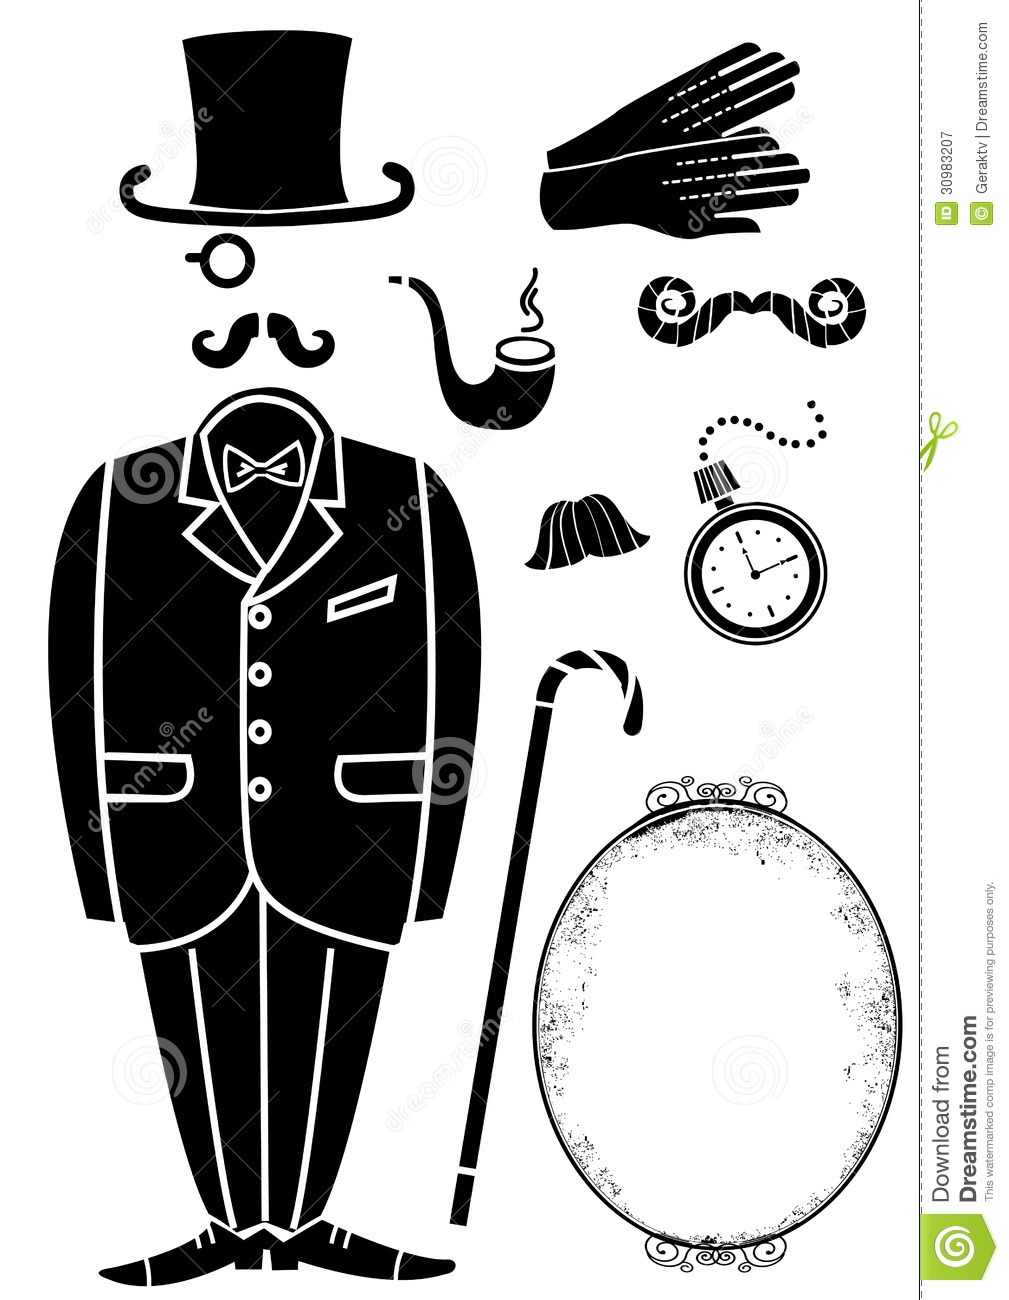 gentleman retro suit and accessories vector symbol stock vector image 30983207. Black Bedroom Furniture Sets. Home Design Ideas